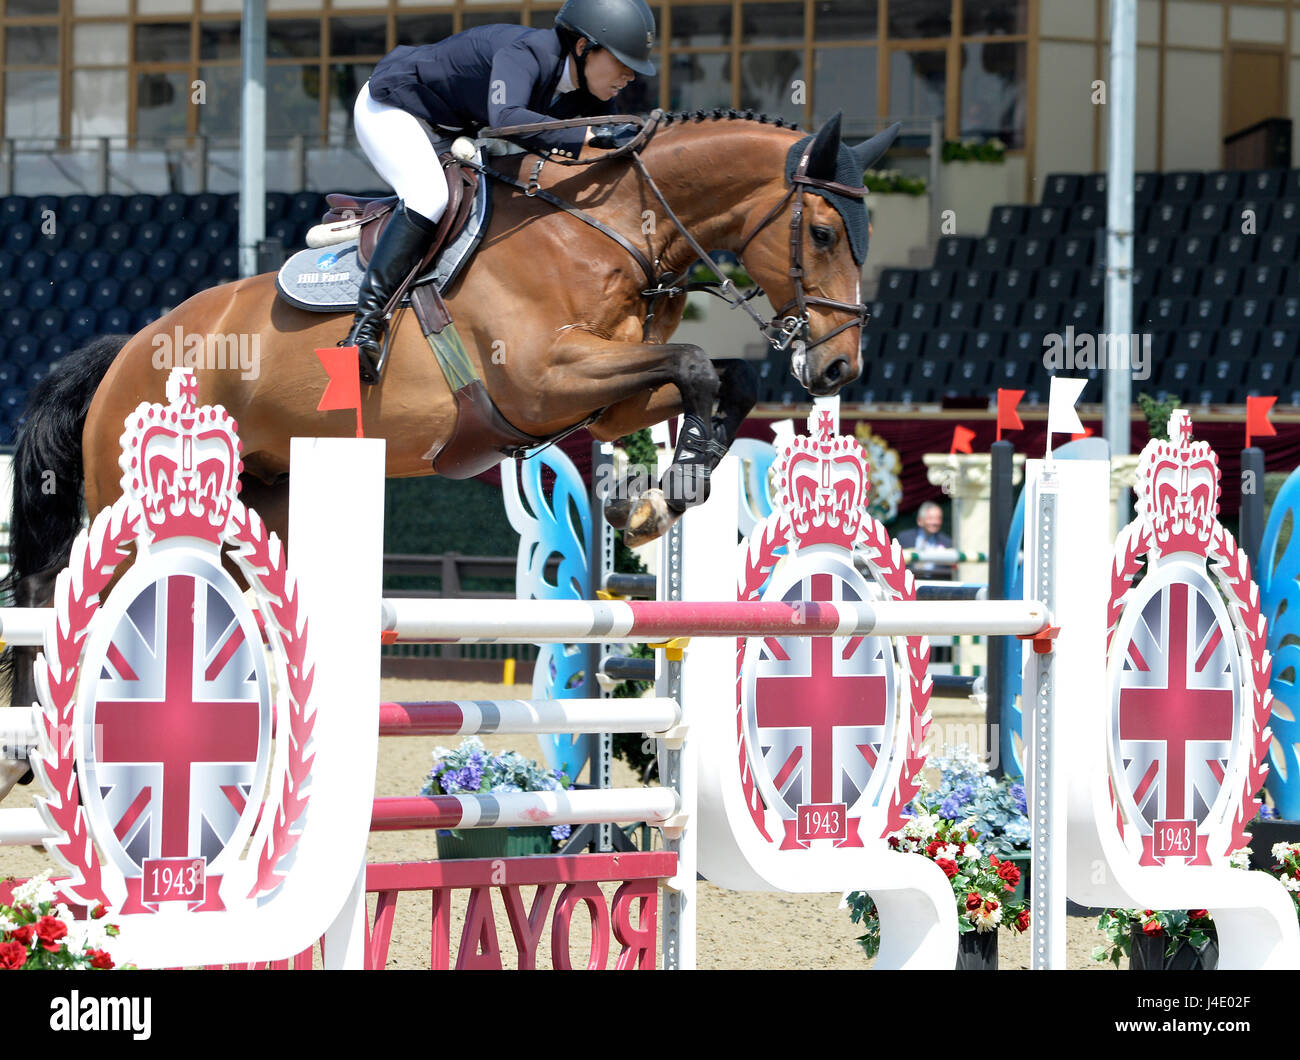 The Royal Windsor Horse Show At Home Park Private Castle UK Thames Speed Stakes Arina Abramovich RUS Riding Quick Stepp Credit Leo